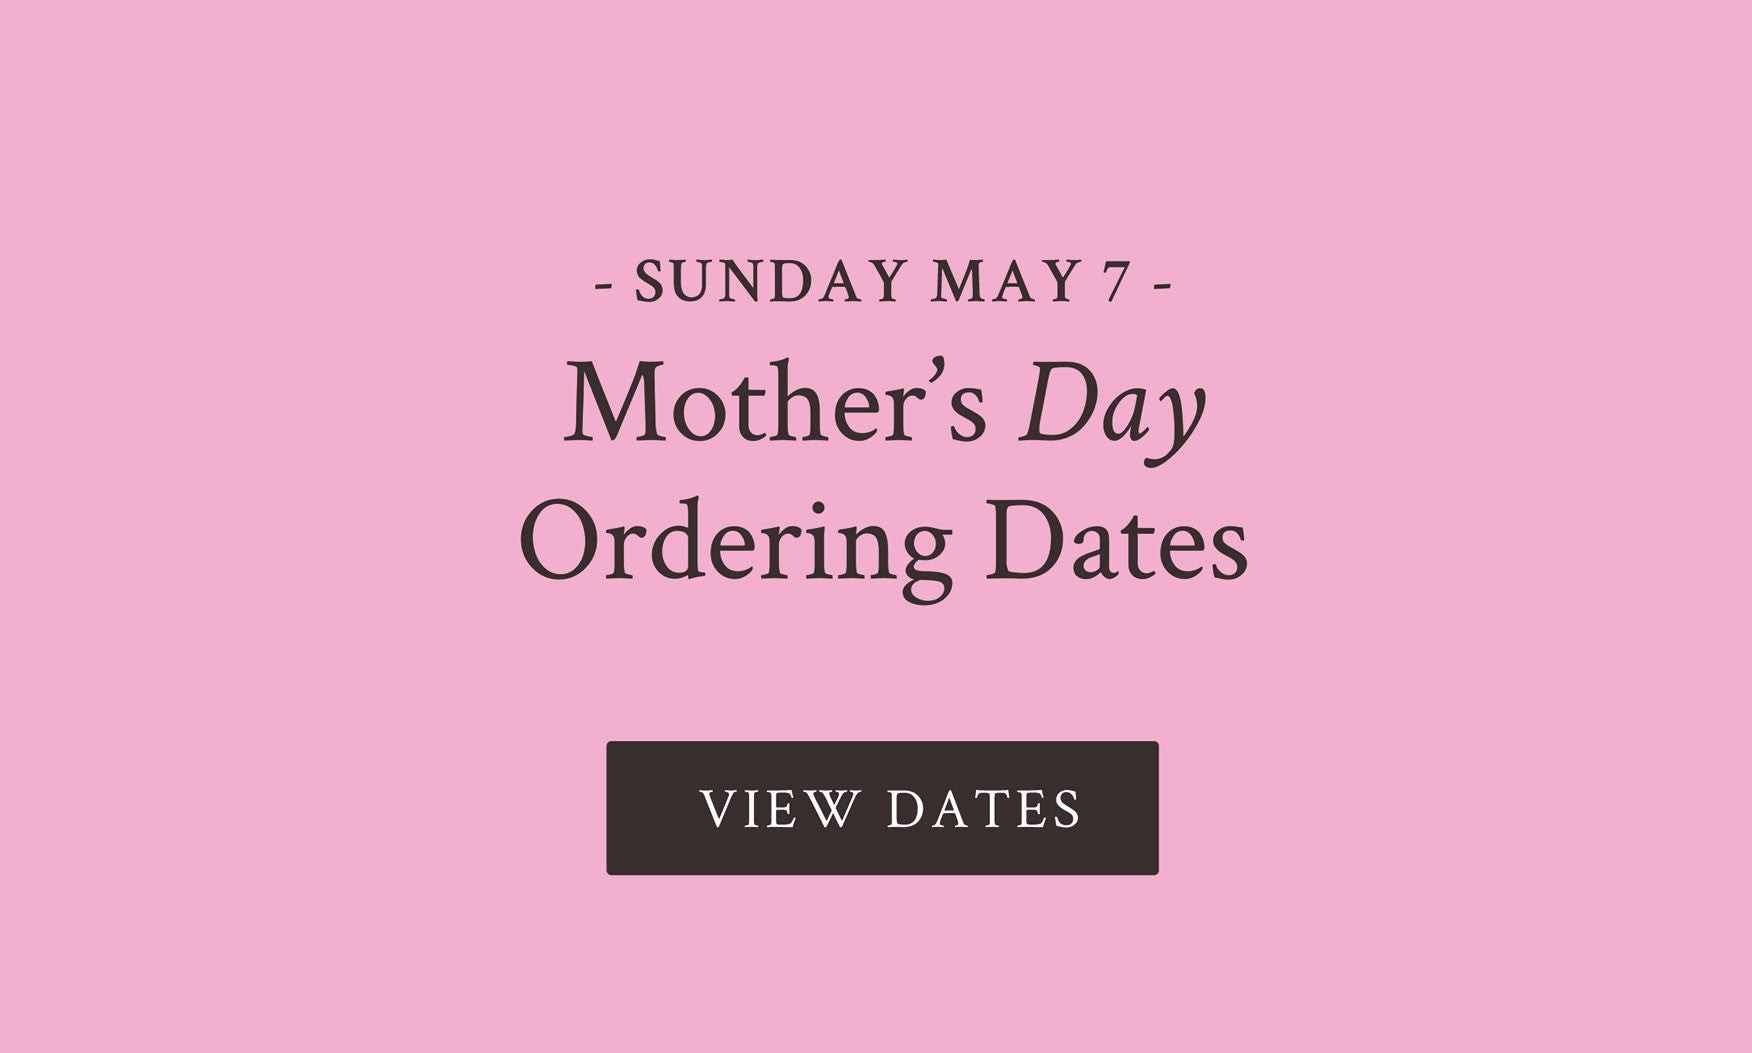 Mother's Day Ordering Dates